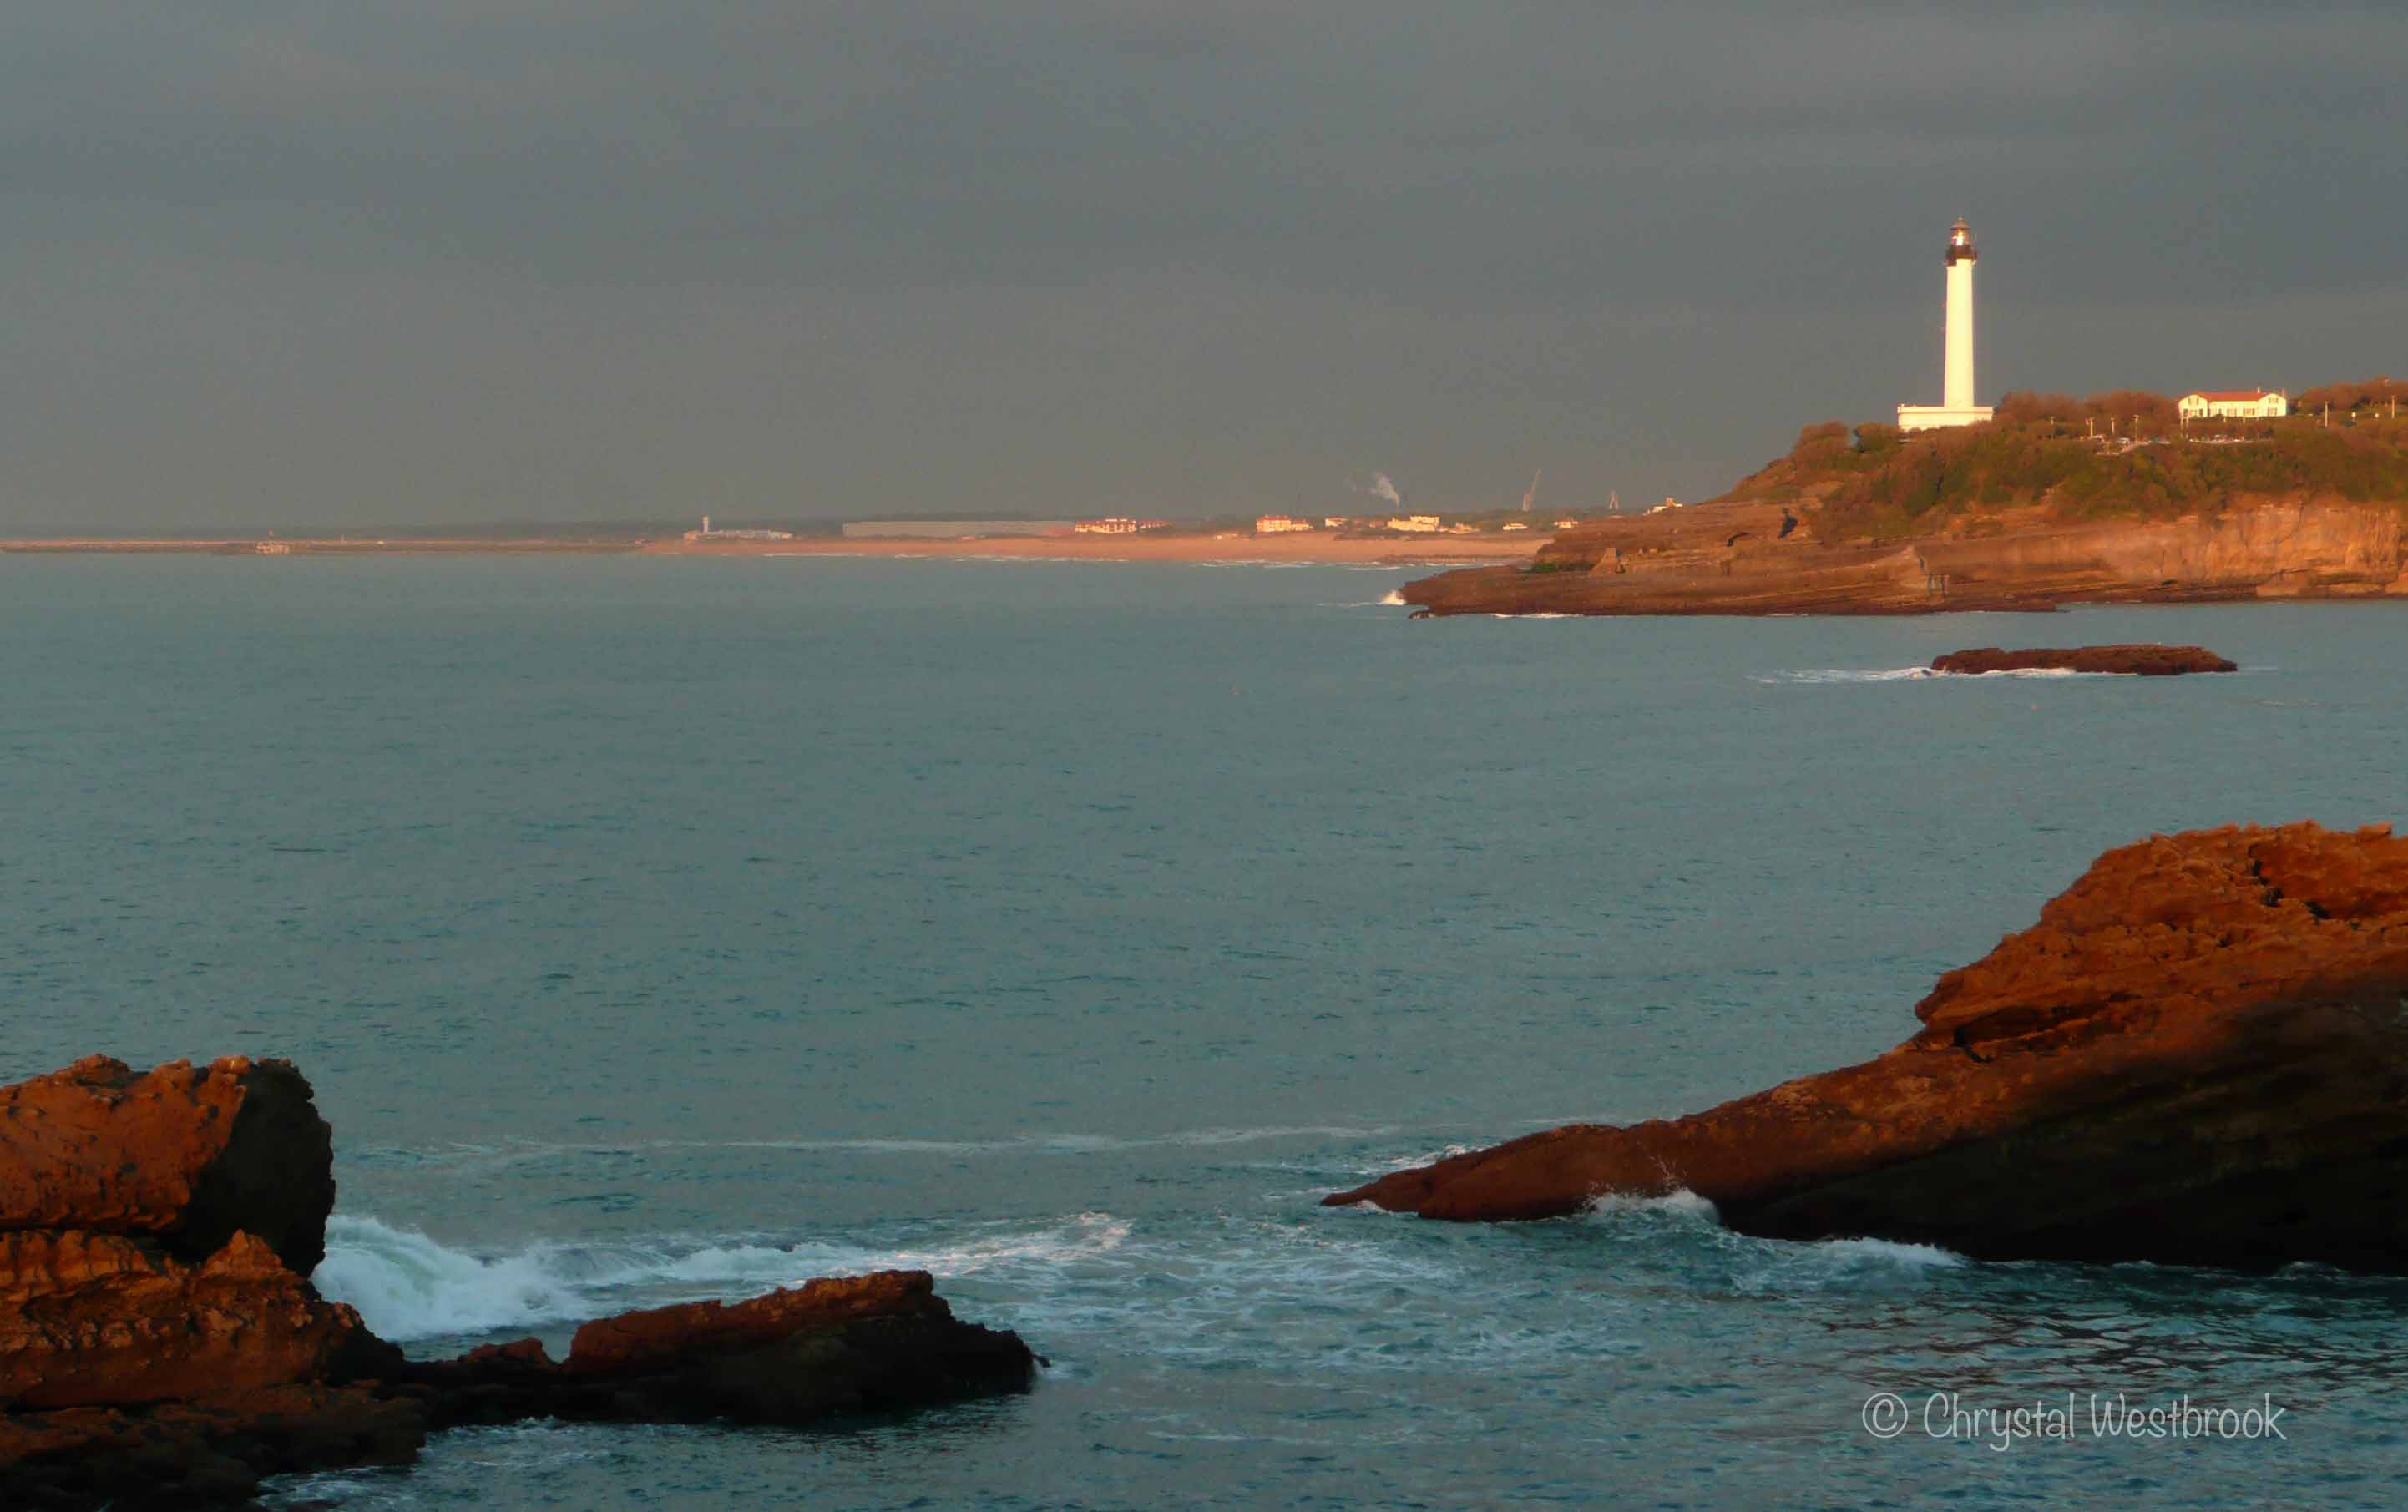 [IMAGE] Lighthouse in Biarritz